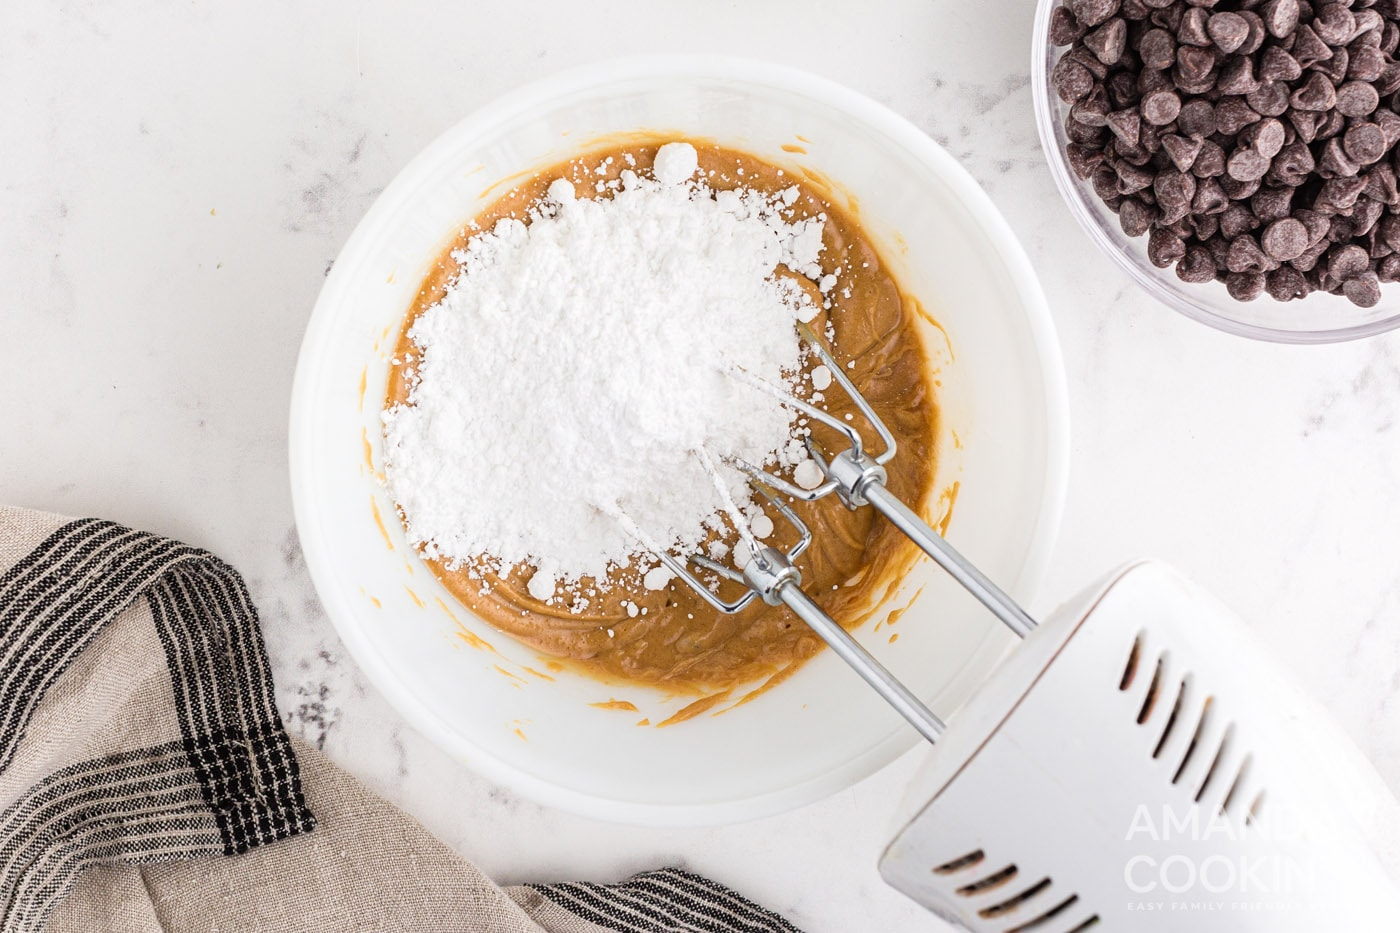 mixing powdered sugar into peanut butter mixture